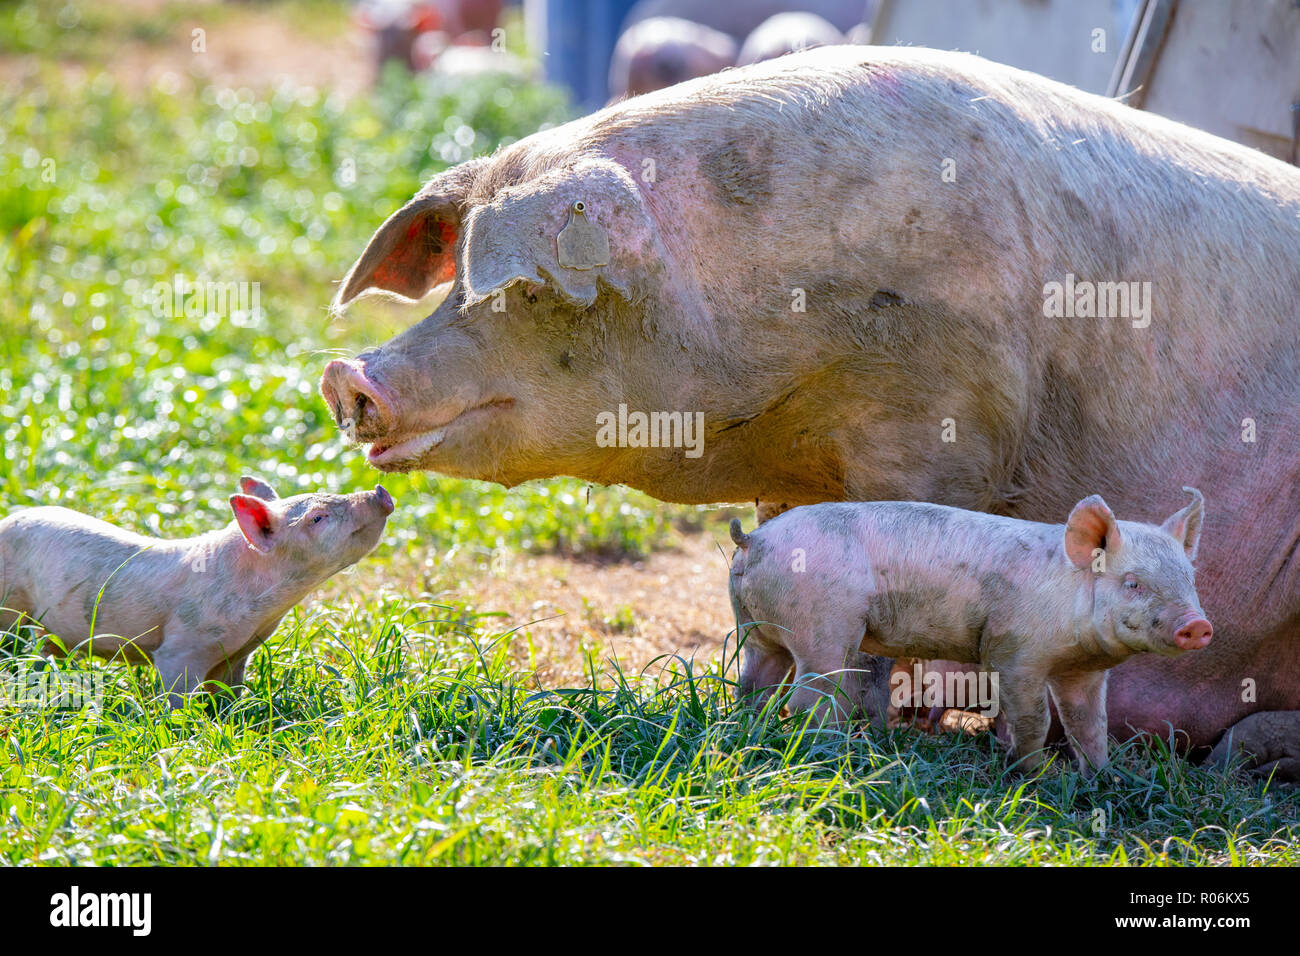 baby pigs stock photos